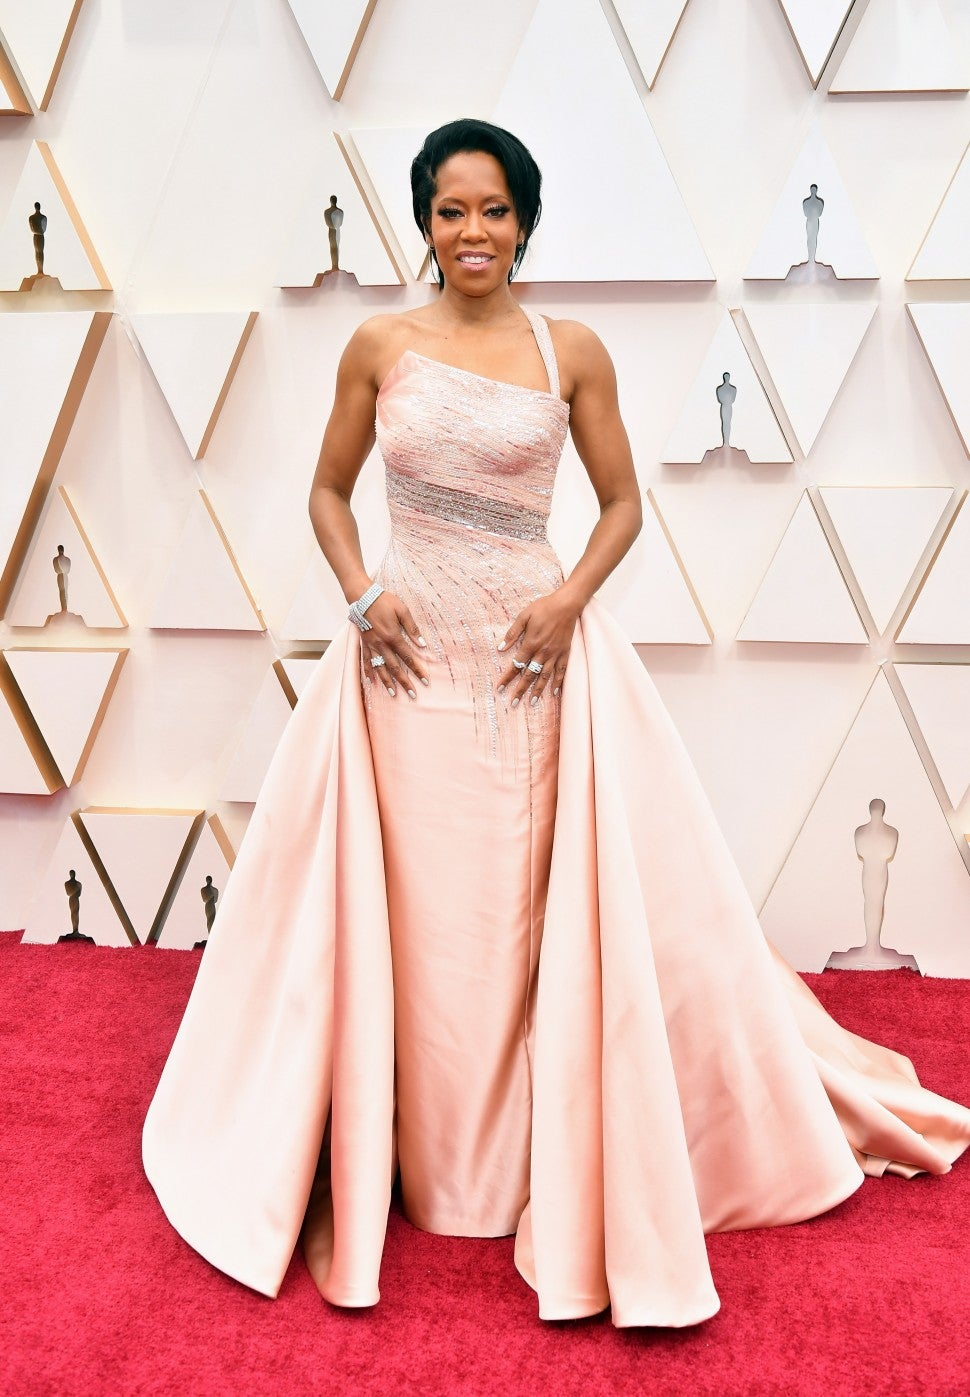 Regina King at the 92nd Annual Academy Awards